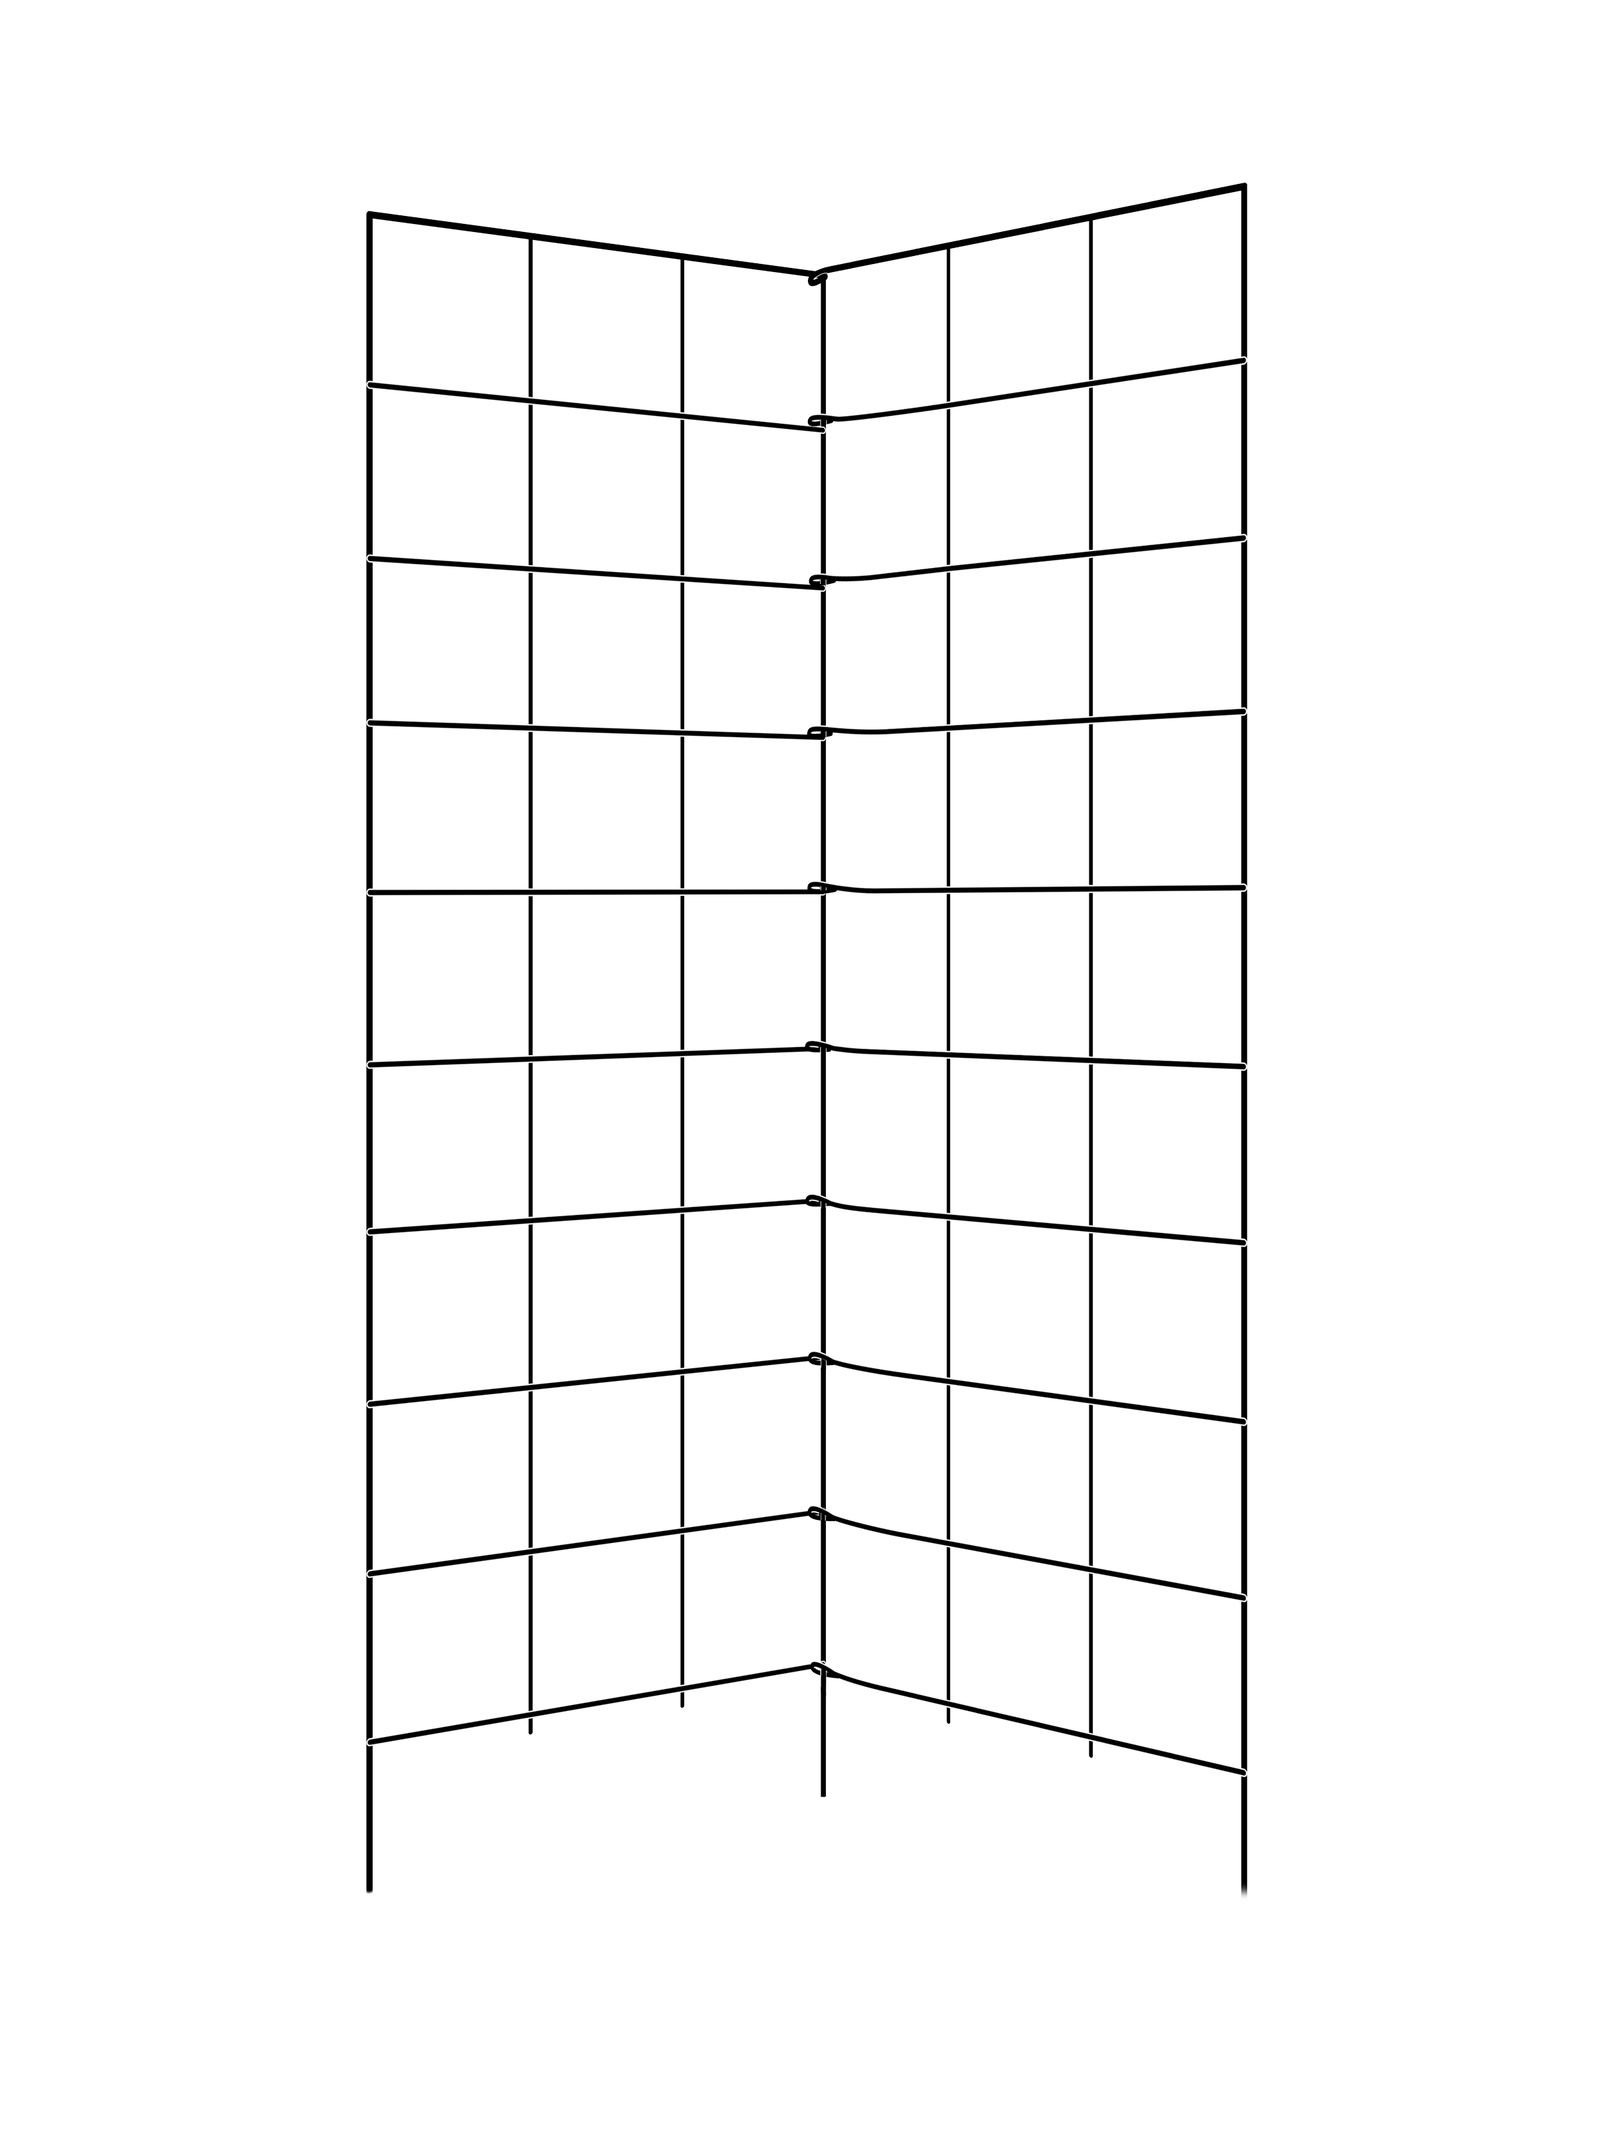 Gardener's Supply Company Two Panel Folding Trellis